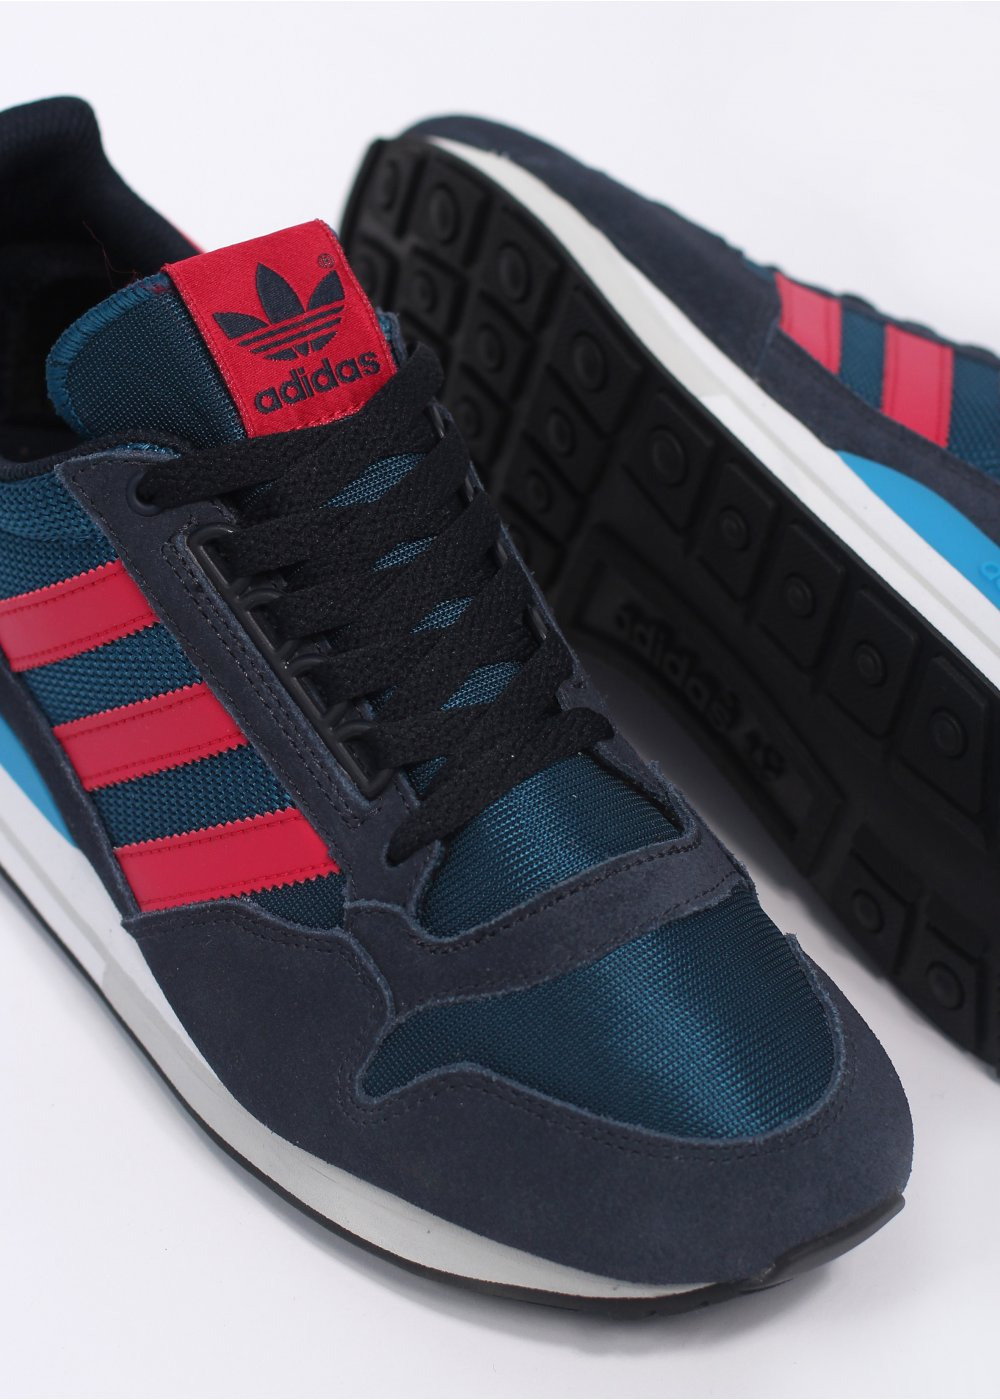 4c4bd76f88232 adidas Originals ZX 500 OG Trainers - Blue   RedZX 500 OG Trainers